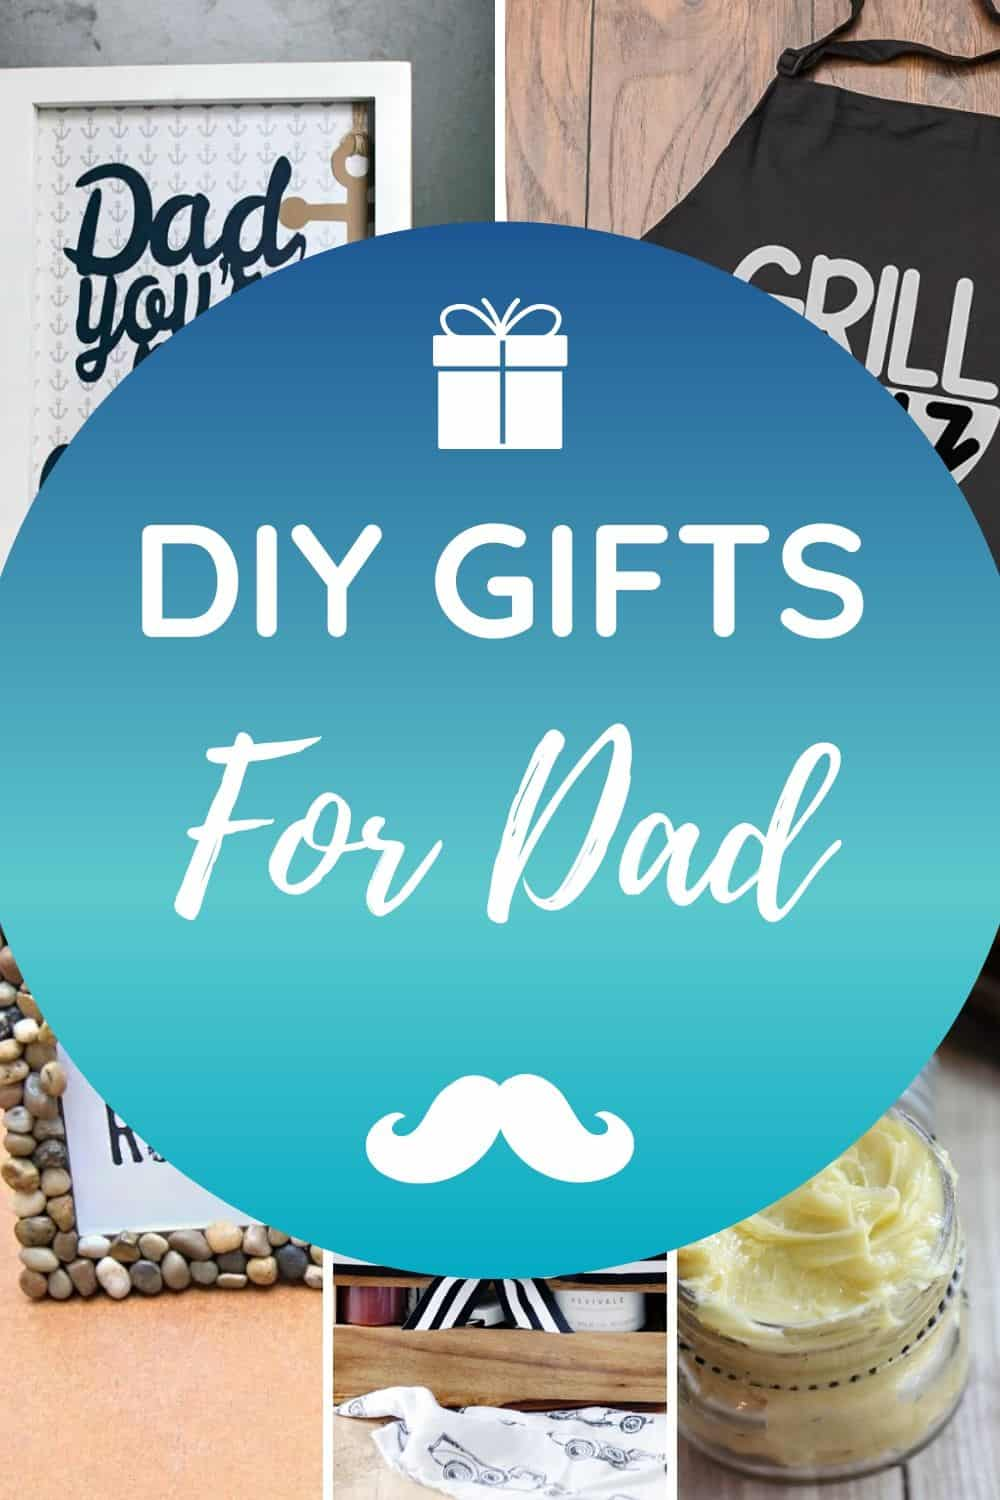 DIY Gifts for Dad - Homemade Gift Ideas for Father's Day